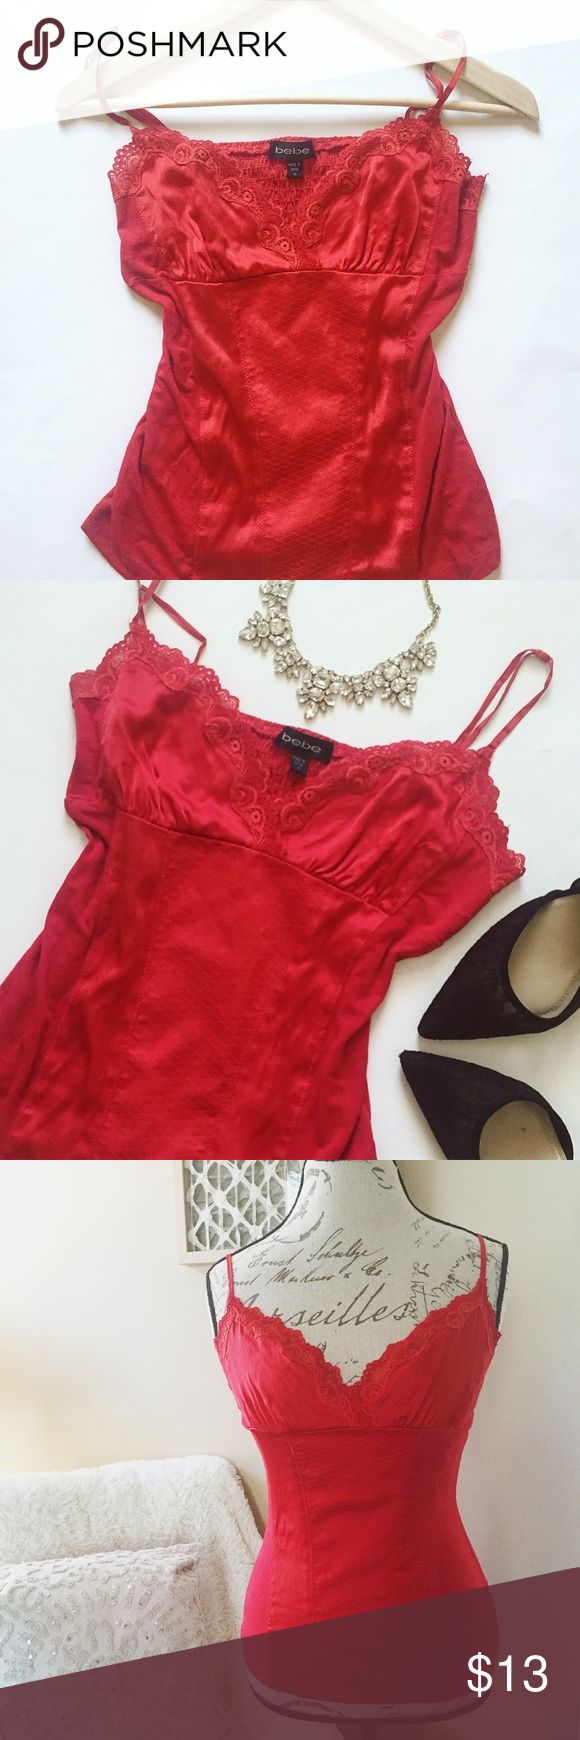 """Bebe Silk Camisole Bebe lace and silk camisole in Rio Red! Looks gorgeous on its own,or with a white or black blazer! Size M,chest measures approx 13"""",with approx 18"""" length. Made of 95% silk/5% spandex,and the contrast is 95% rayon/5% spandex,so there is some stretch to it! I would say this is in good condition,no major flaws,just a couple small white spots(see last pic) that are barely noticeable,light pilling on contrast,and right strap has part of adjuster missing,so it is a little…"""